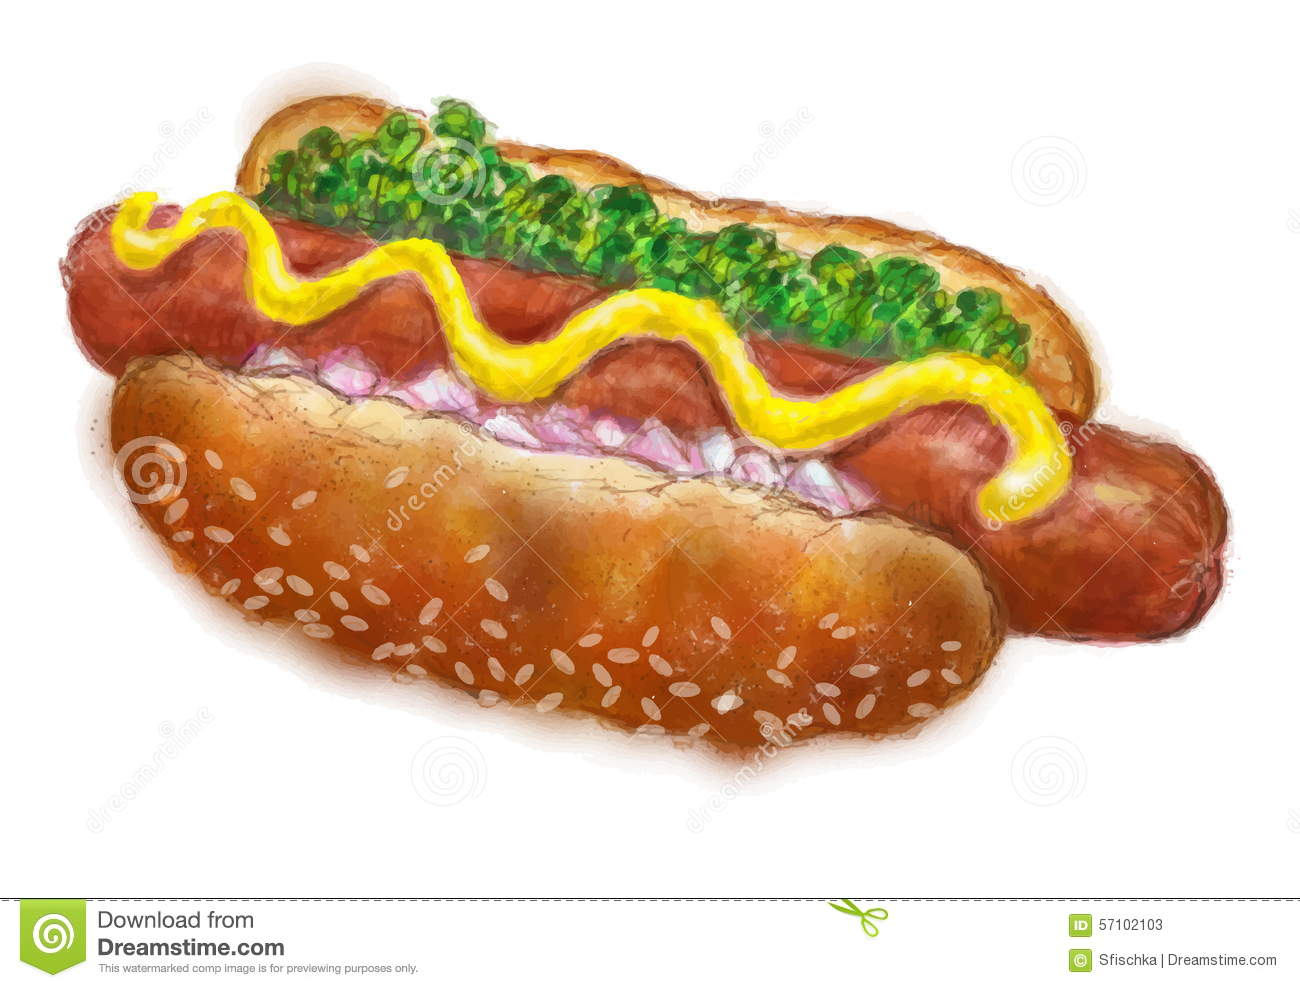 How To Draw A Hot Dog In A Bun